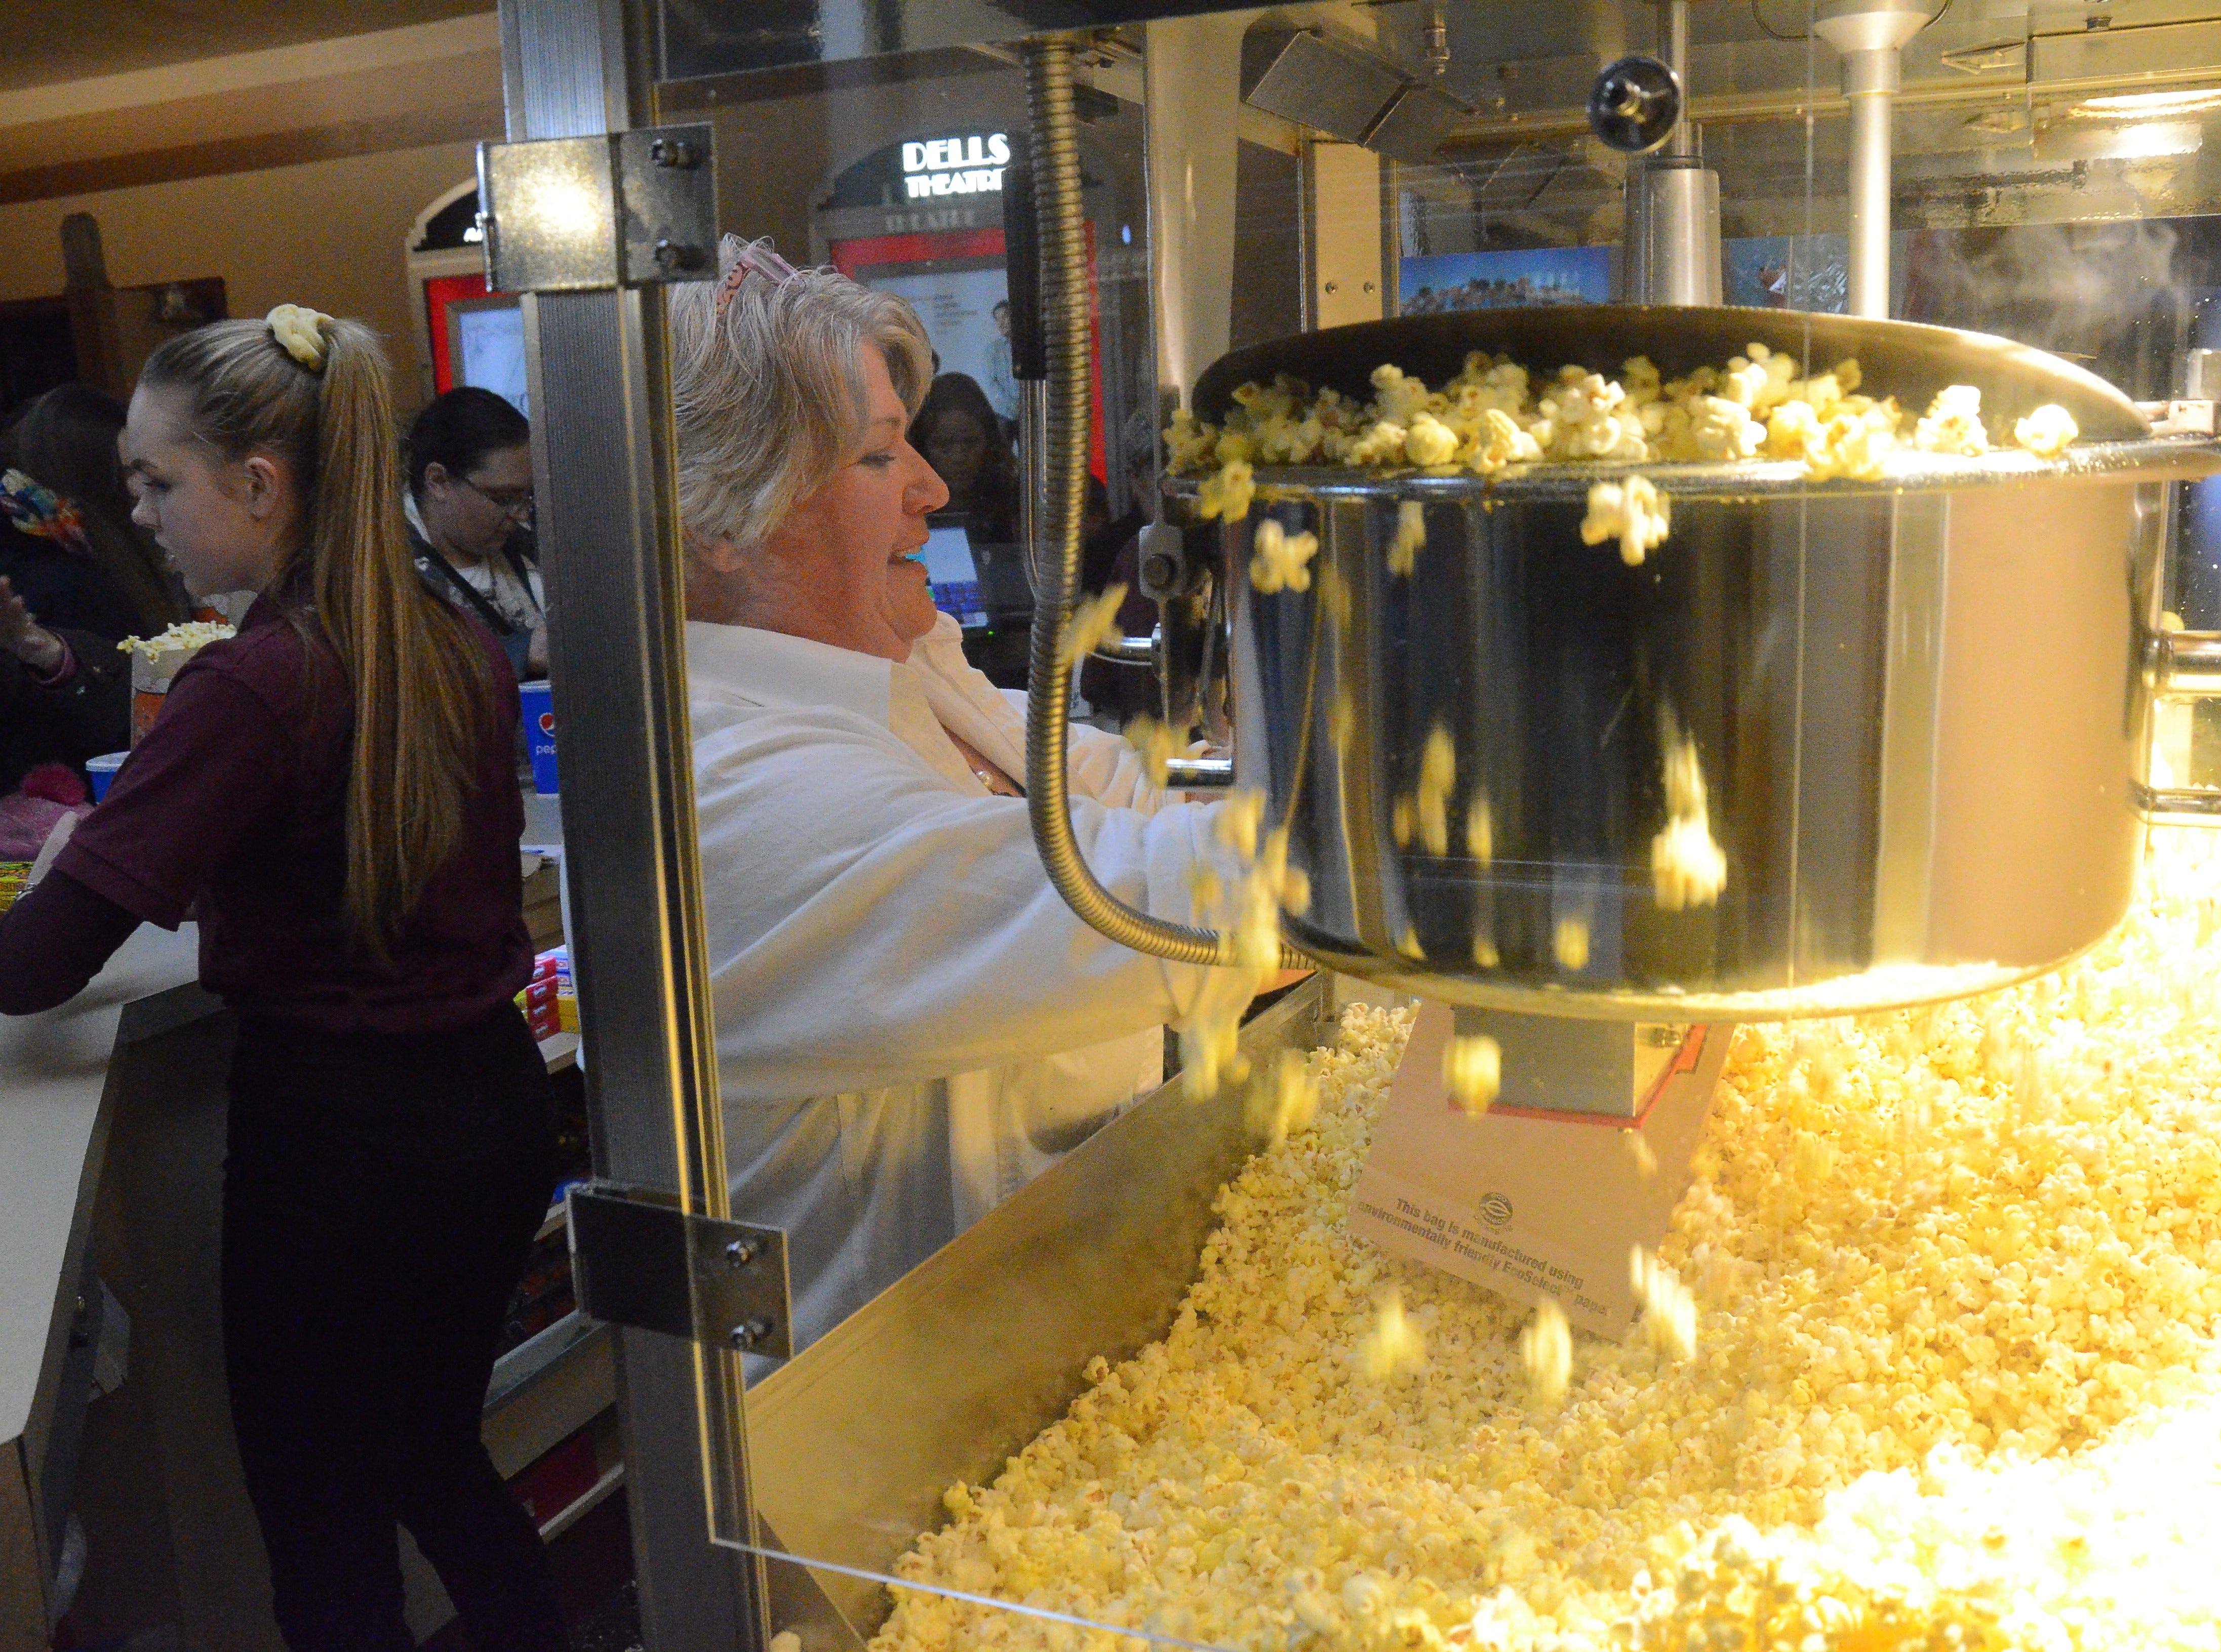 Plenty of popcorn awaited the crowd Thursday night at the Dells Theatre.